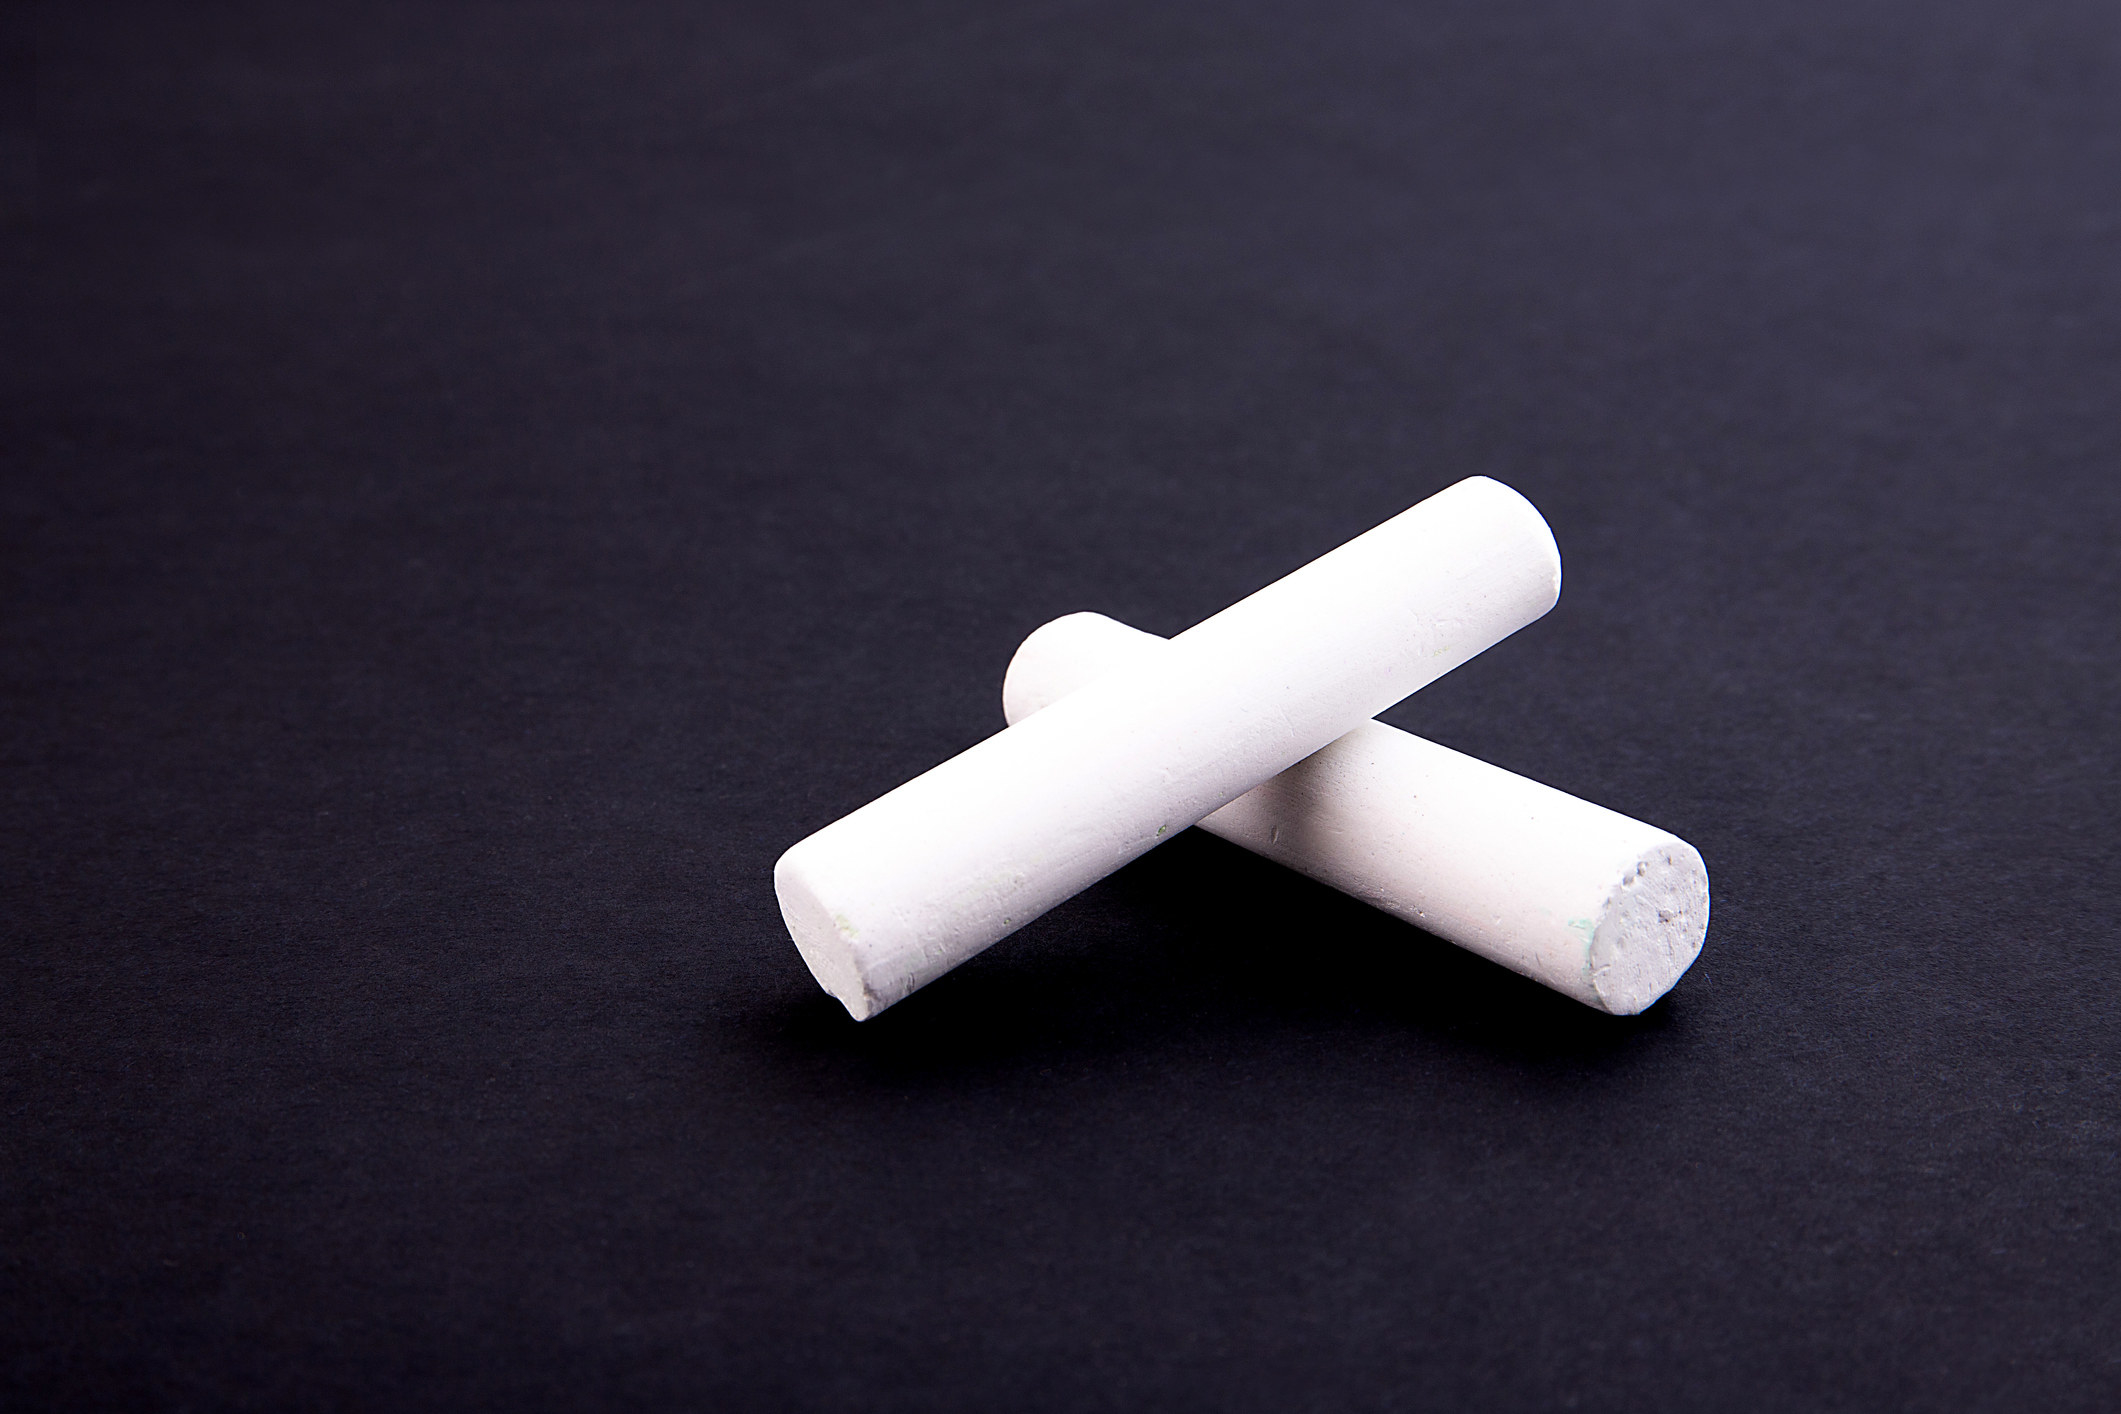 Two white crayons on a black background